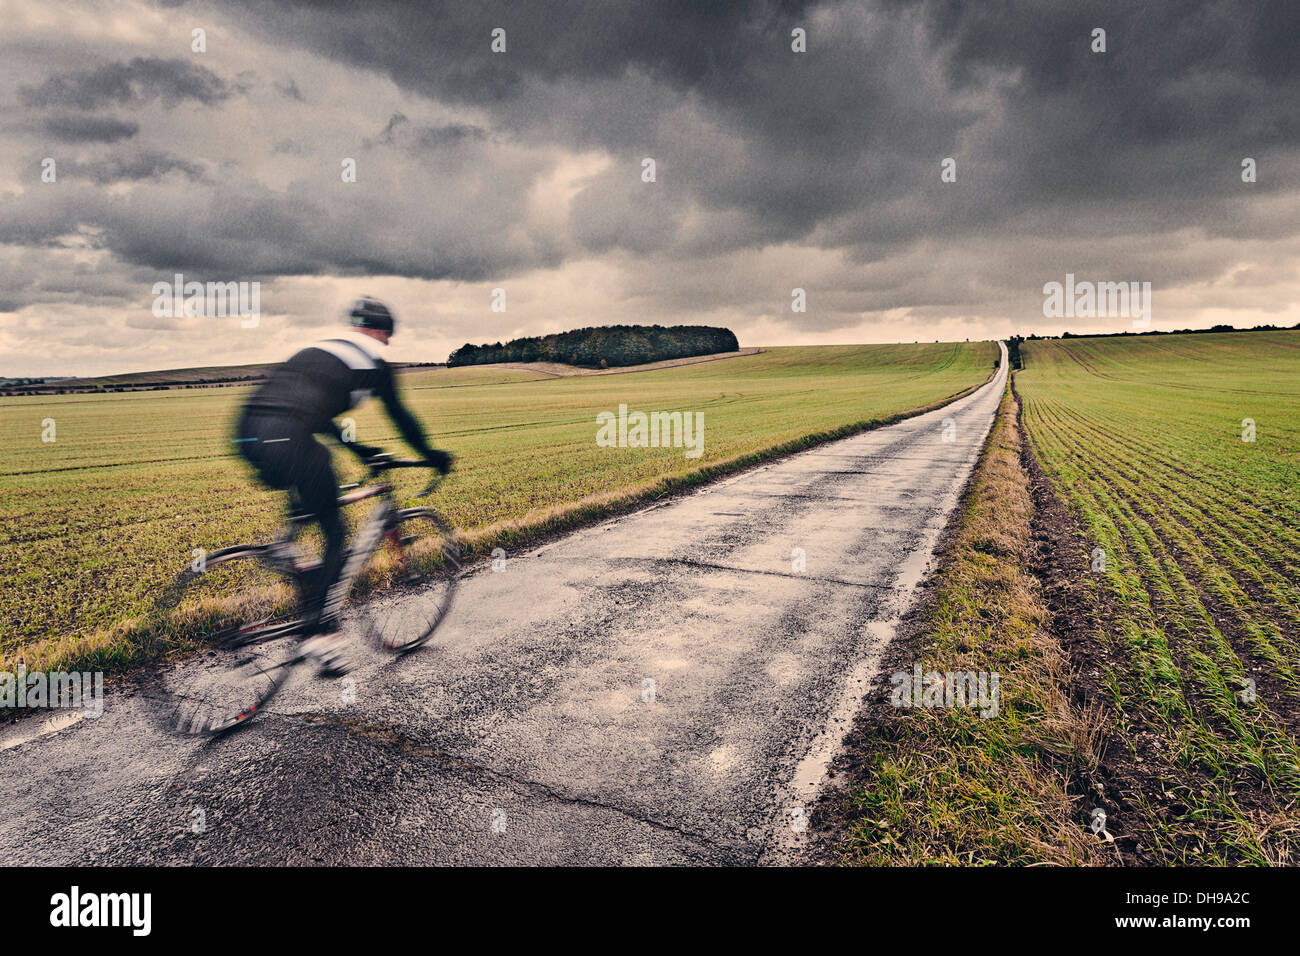 Lone Cyclist in UK Countryside - Stock Image